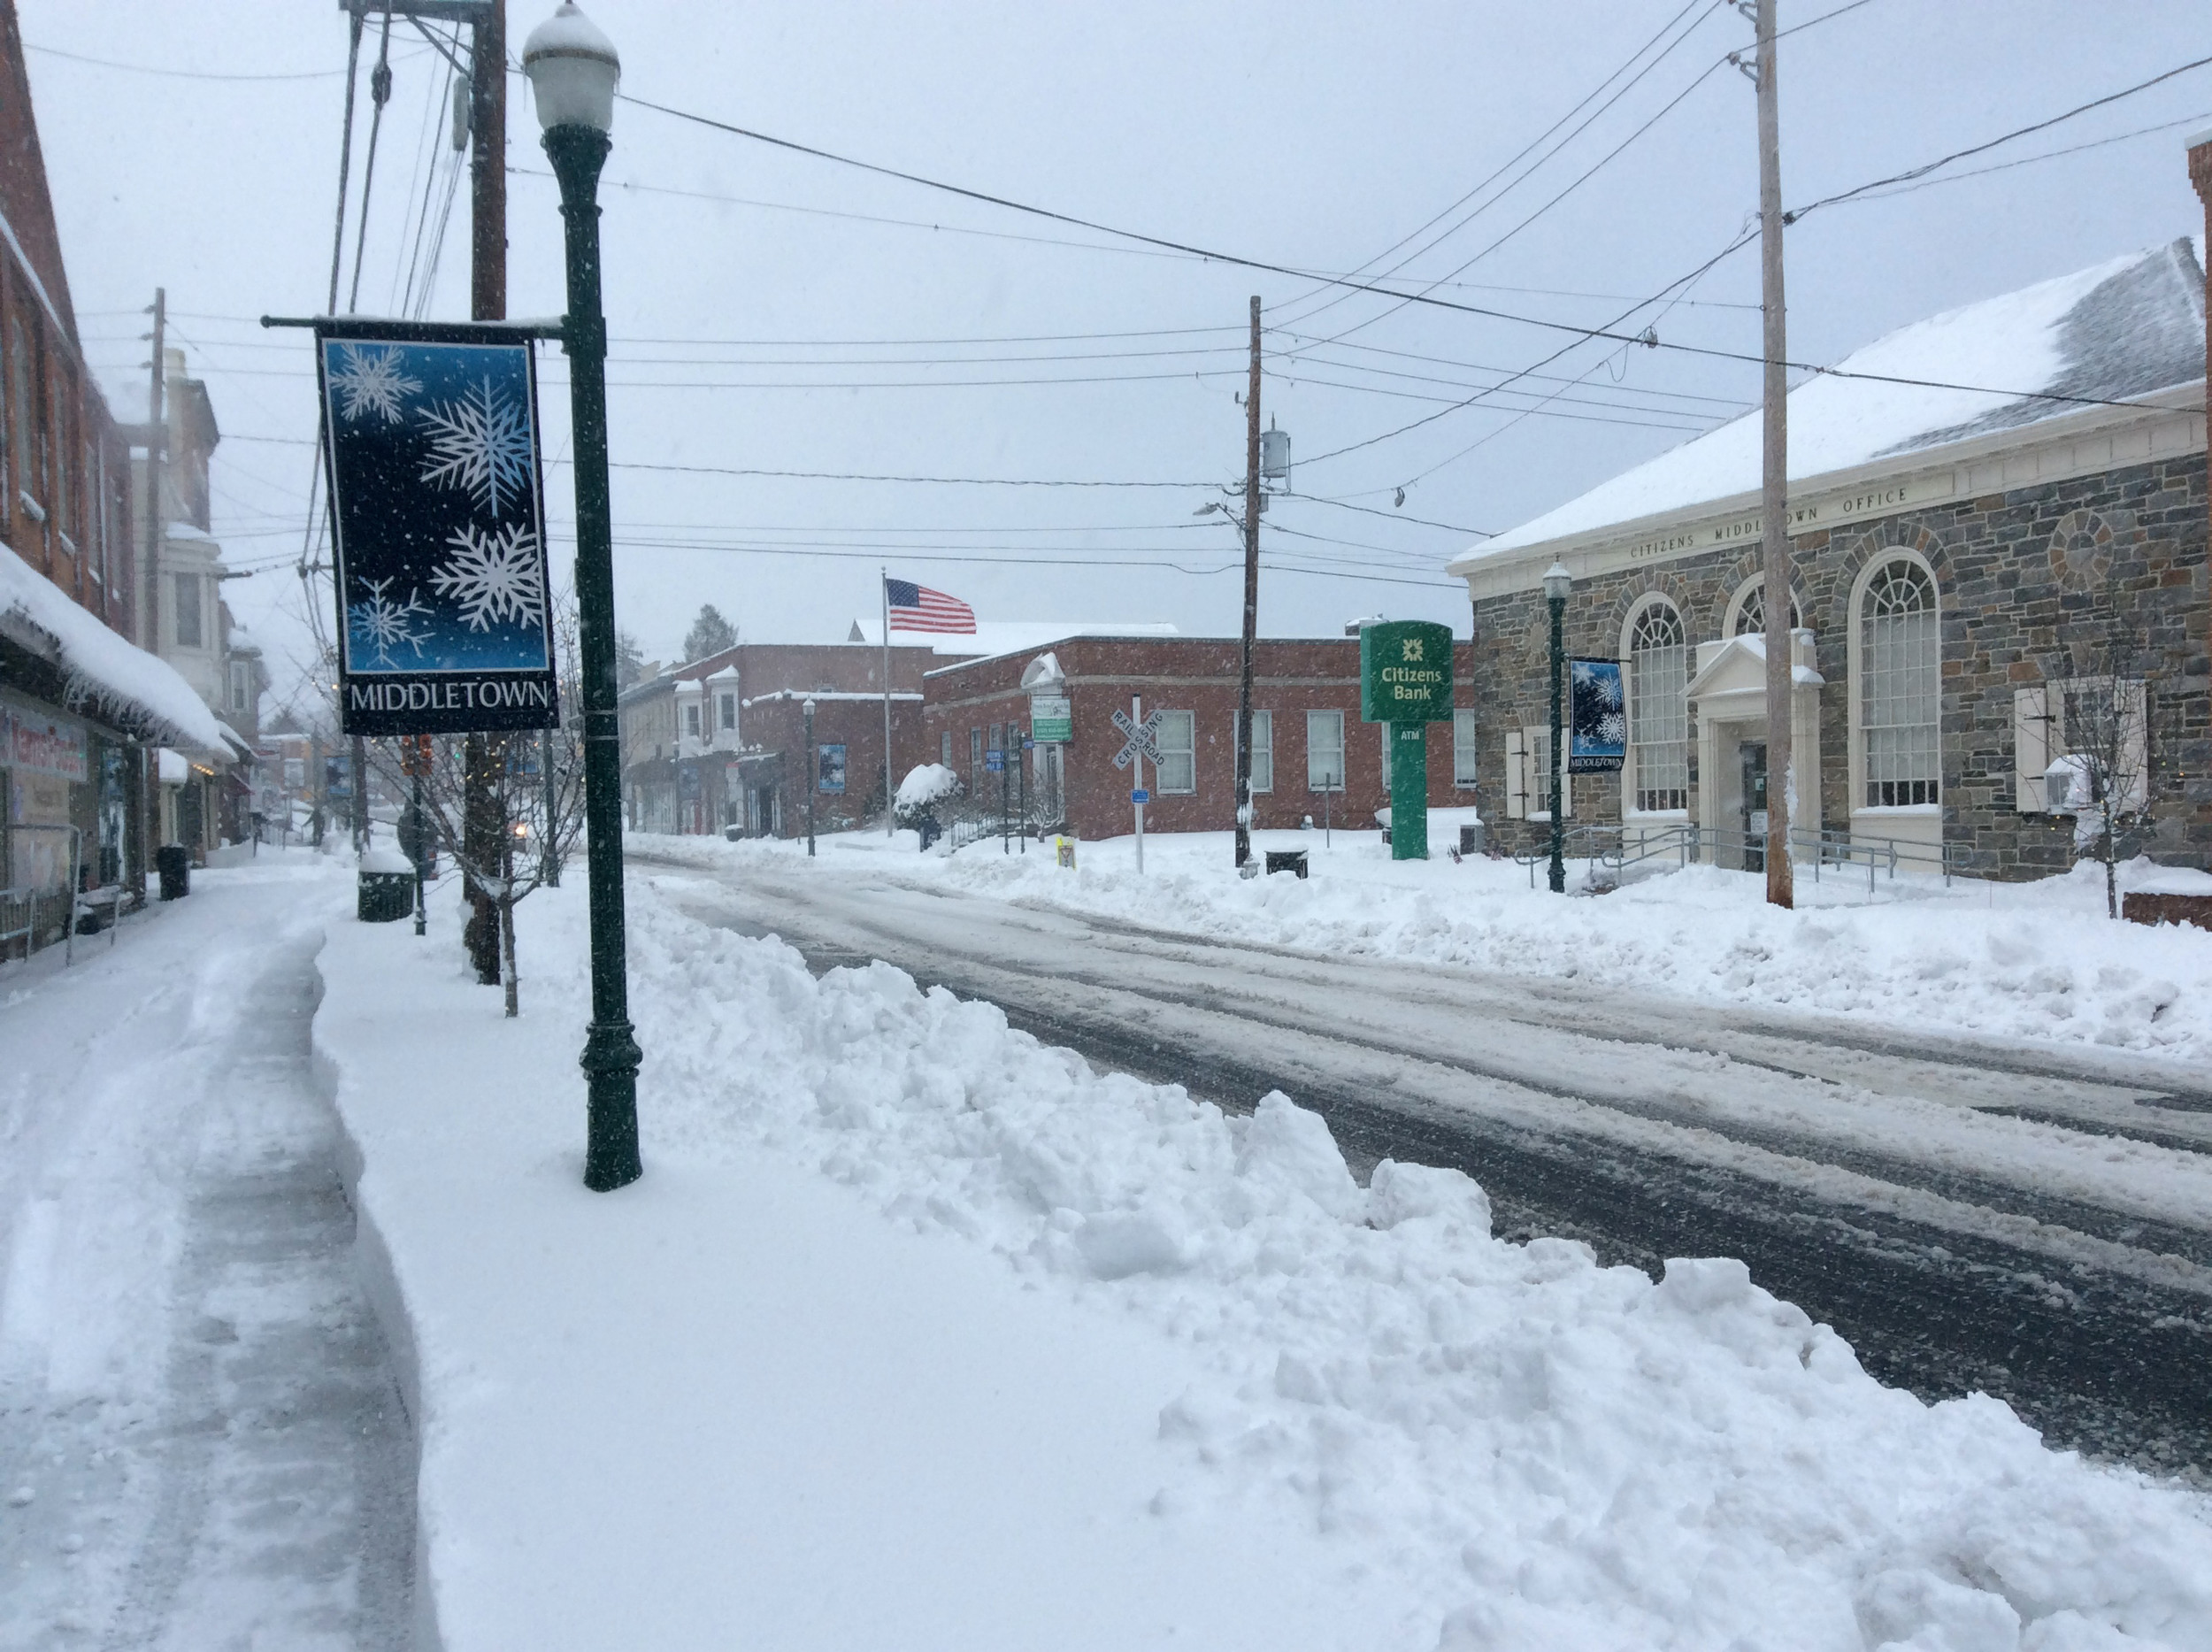 Snow on South Union Street.